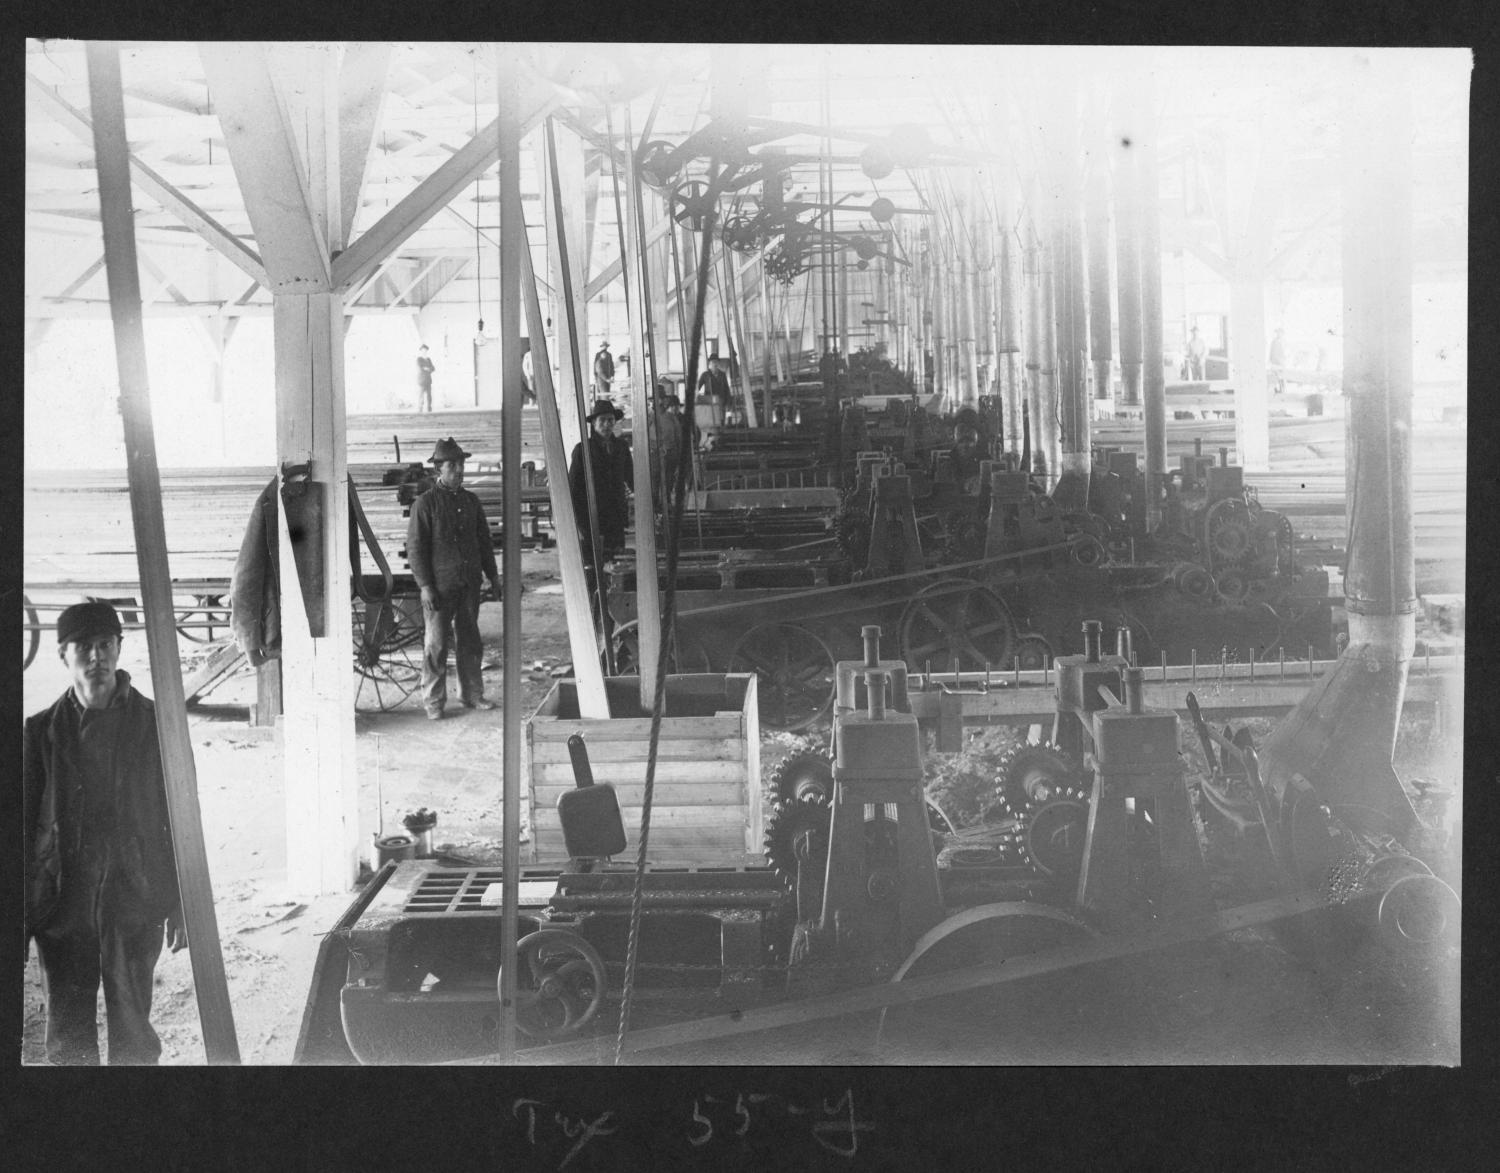 Tex55 Planing Mill Machines and Mill Workers